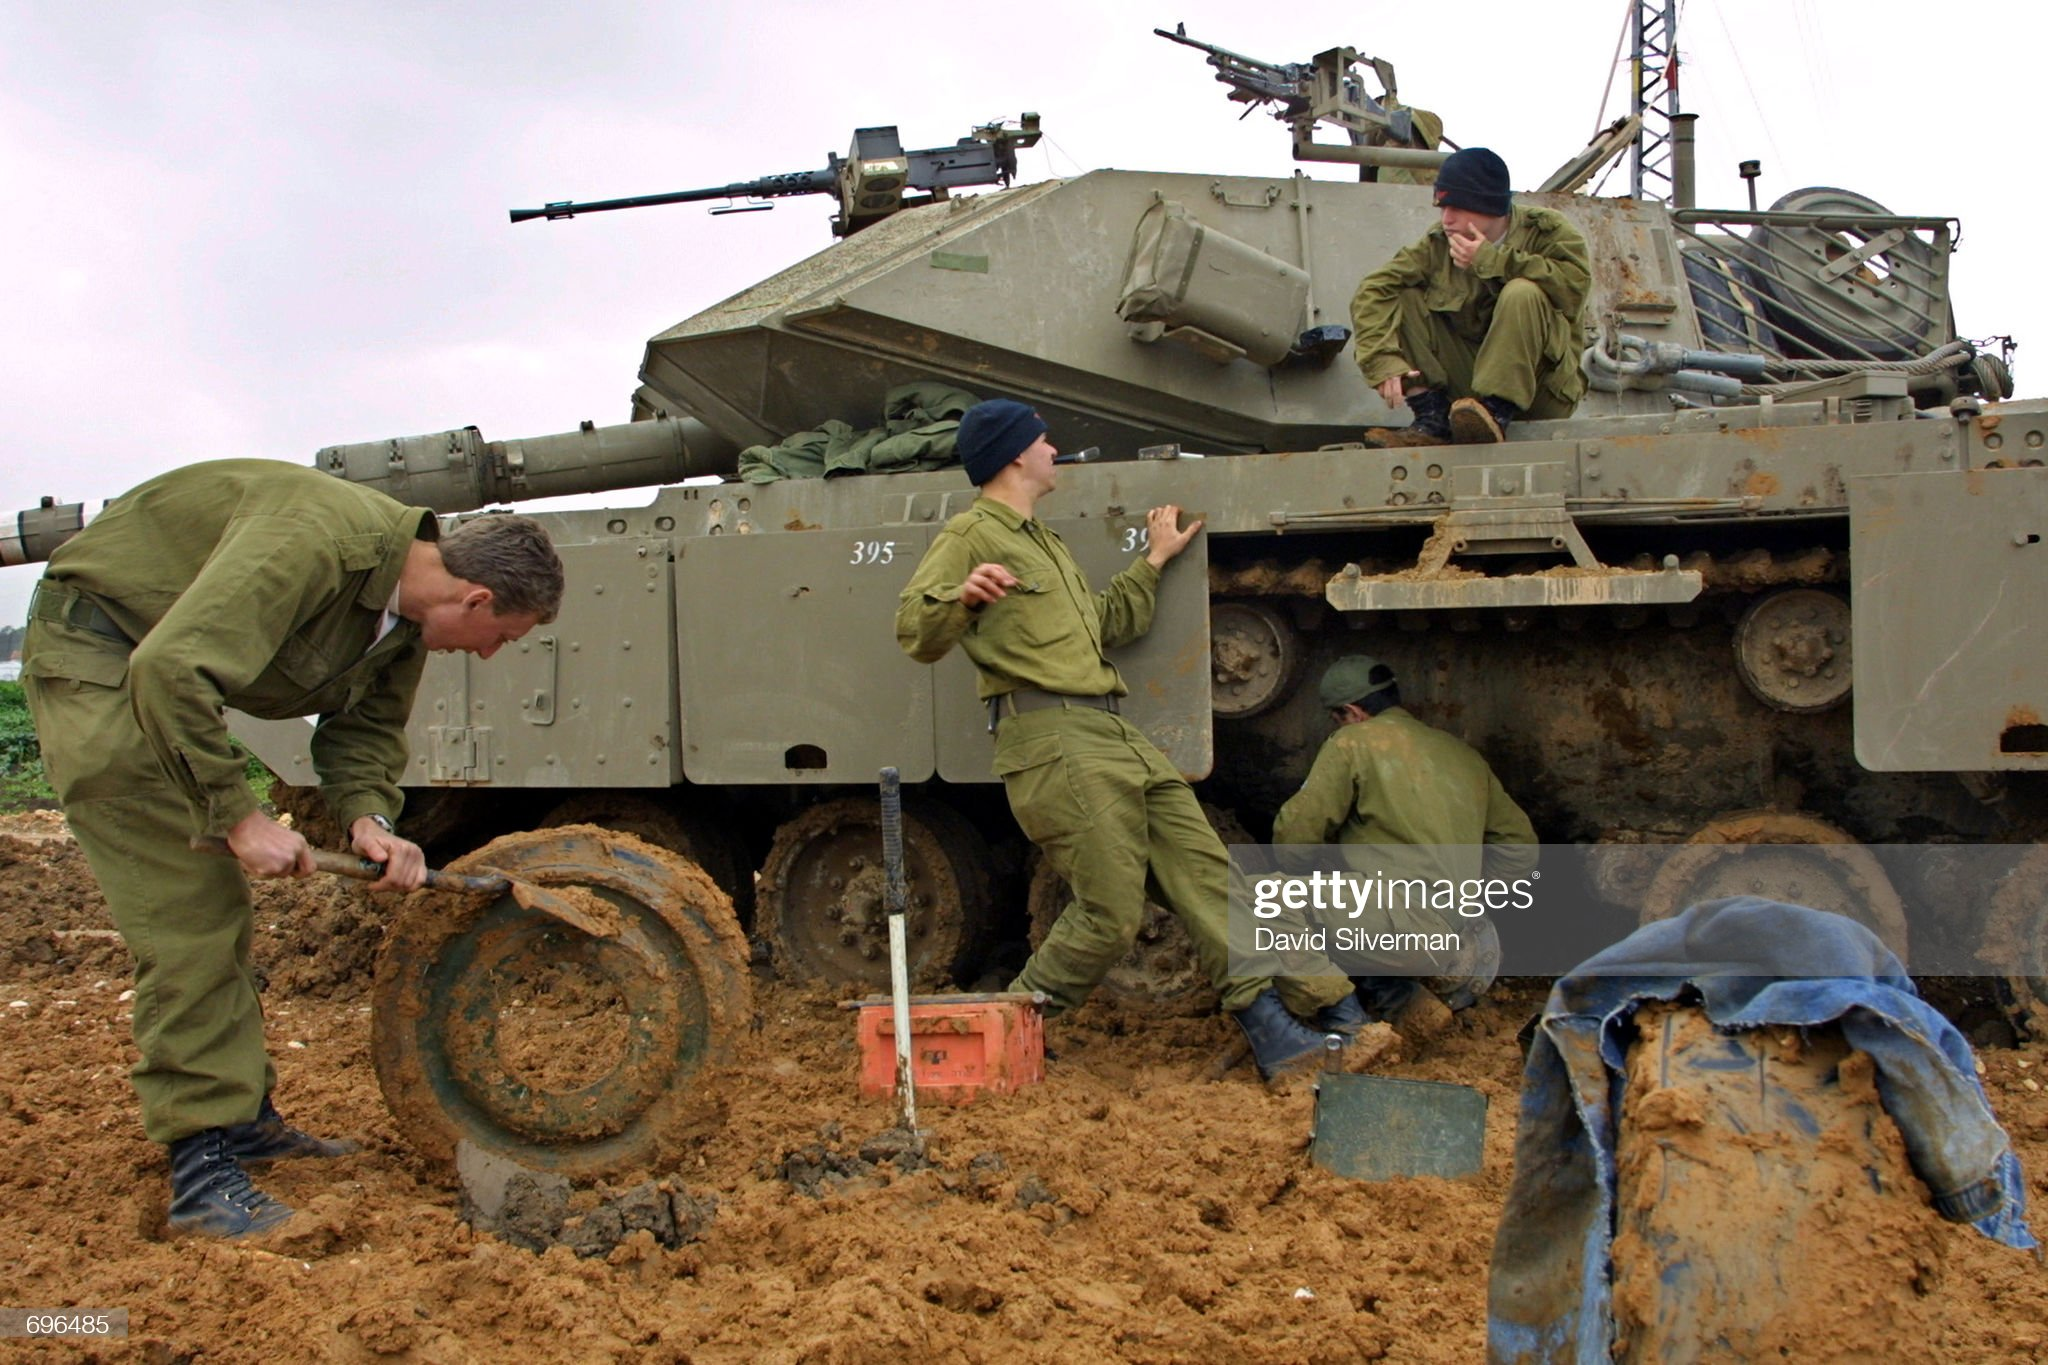 https://media.gettyimages.com/photos/israeli-soldiers-repair-their-tanks-tracks-february-12-2002-where-picture-id696485?s=2048x2048